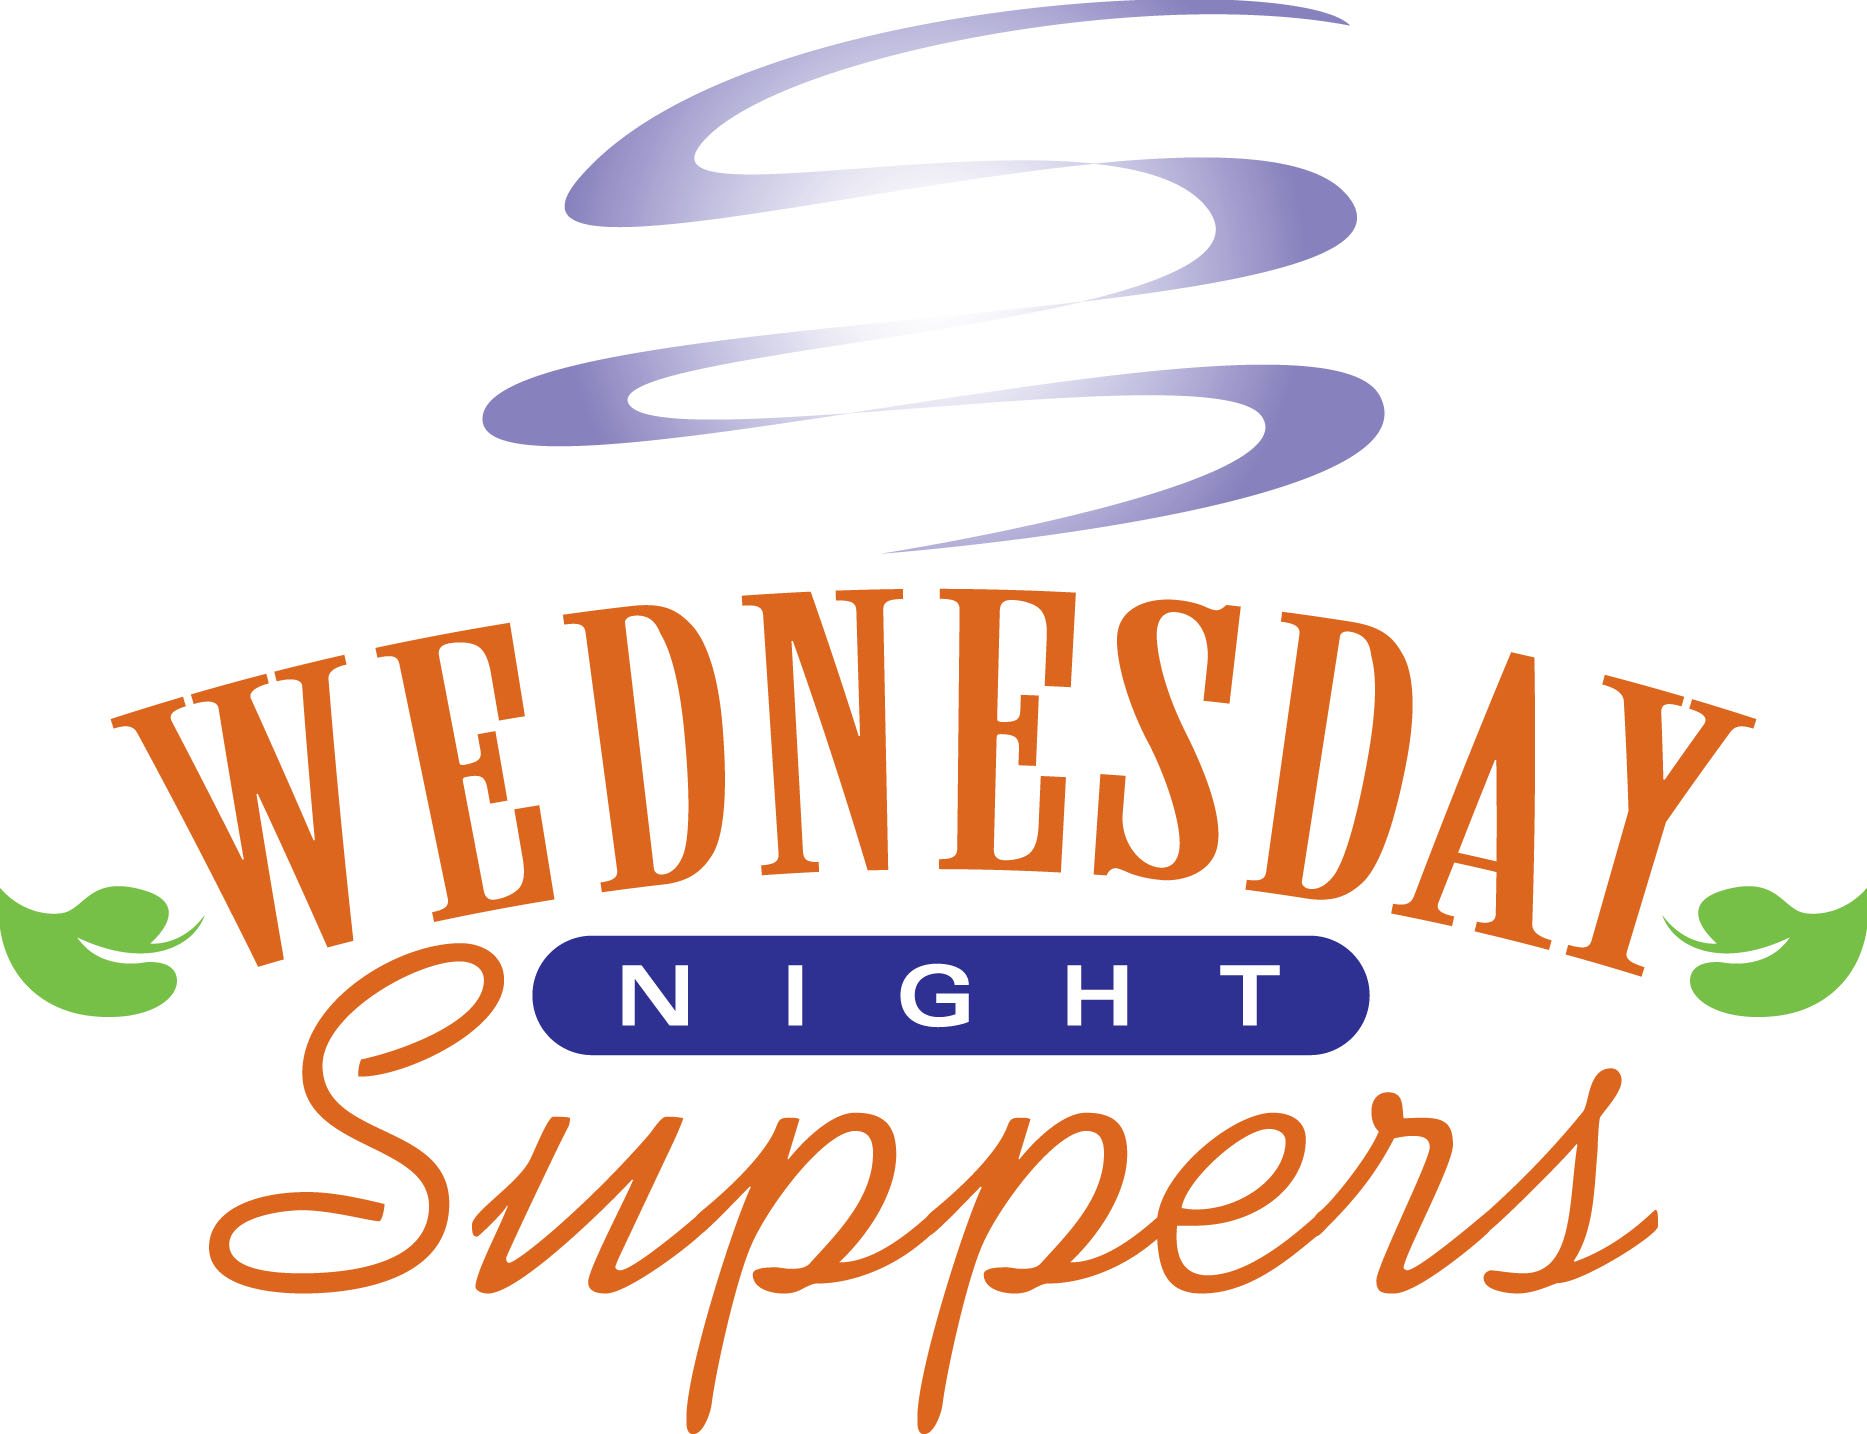 Wednesday night supper clipart